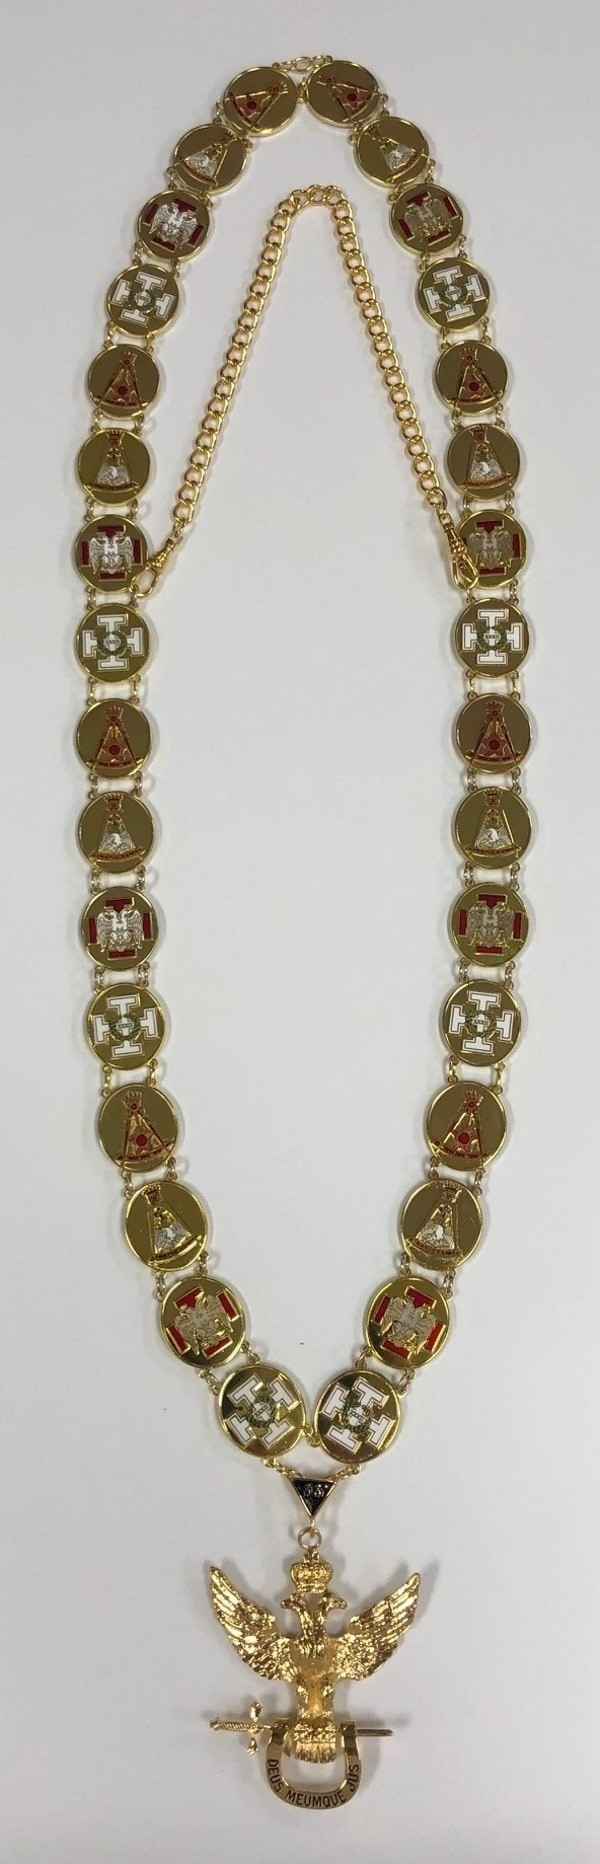 Scottish Rite 33rd Degree Collar & Jewel